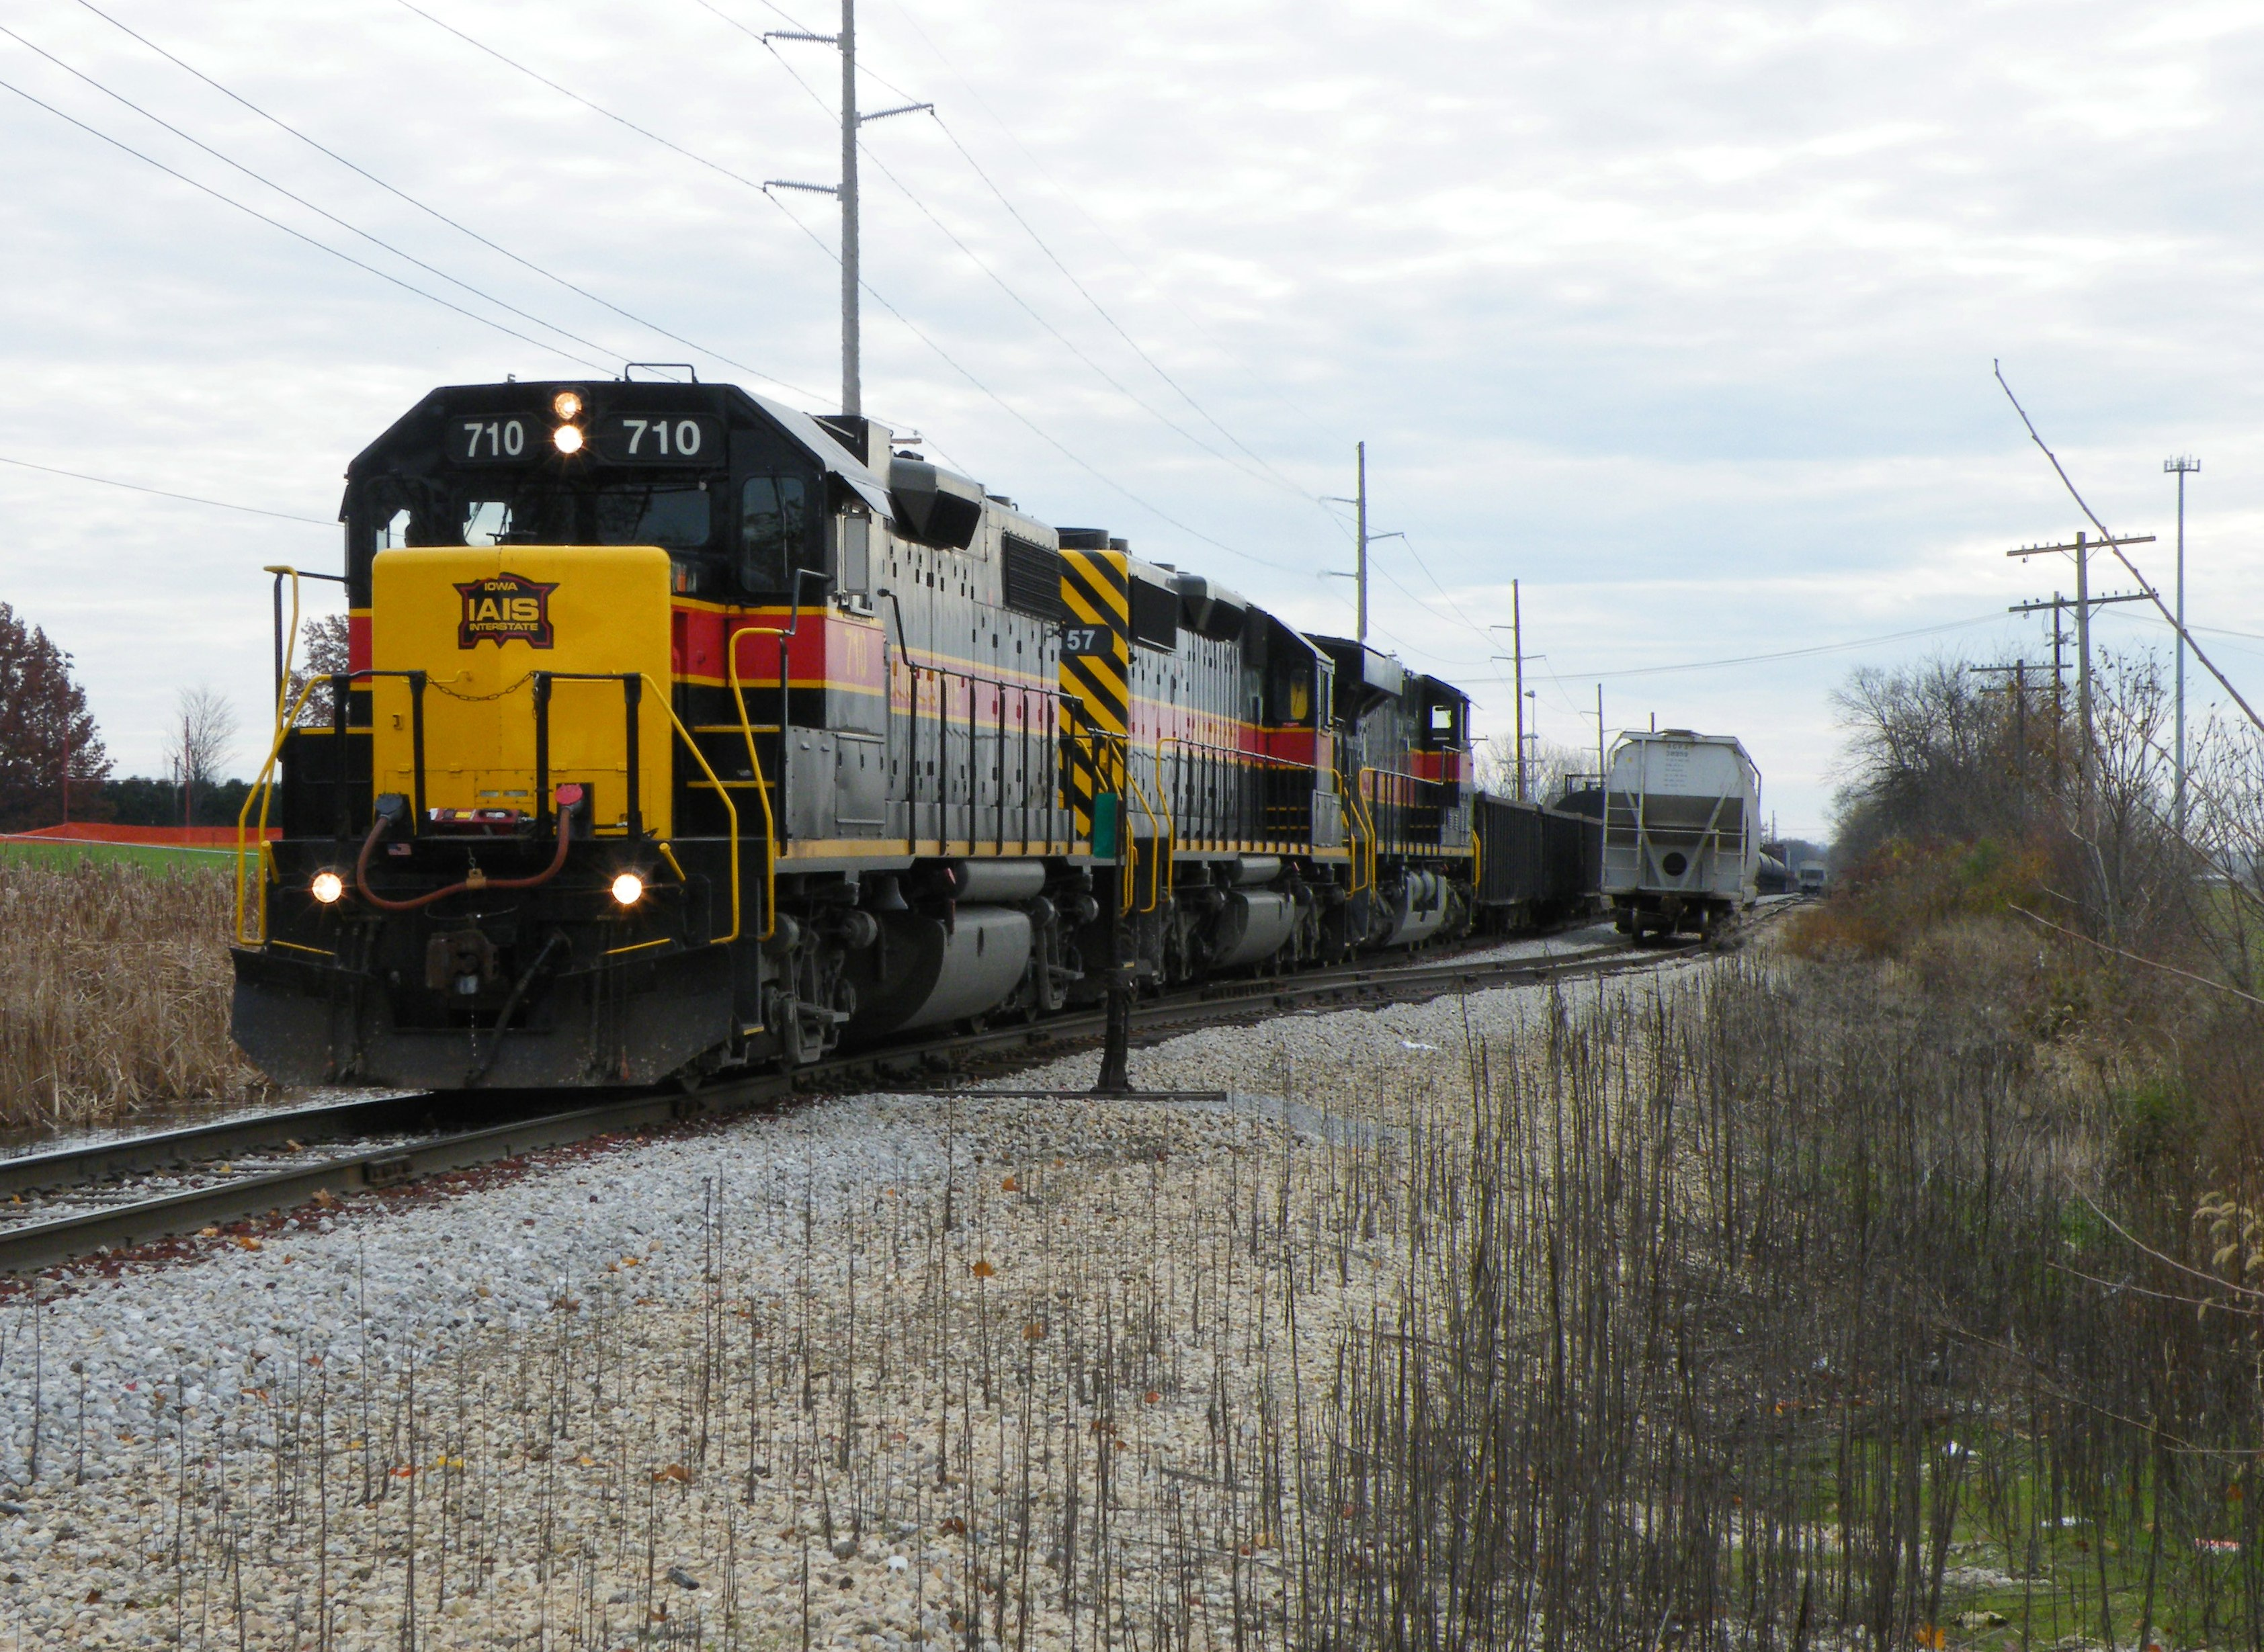 710 leads 157 and 511 on BICB as they cross First Ave. in Iowa City.